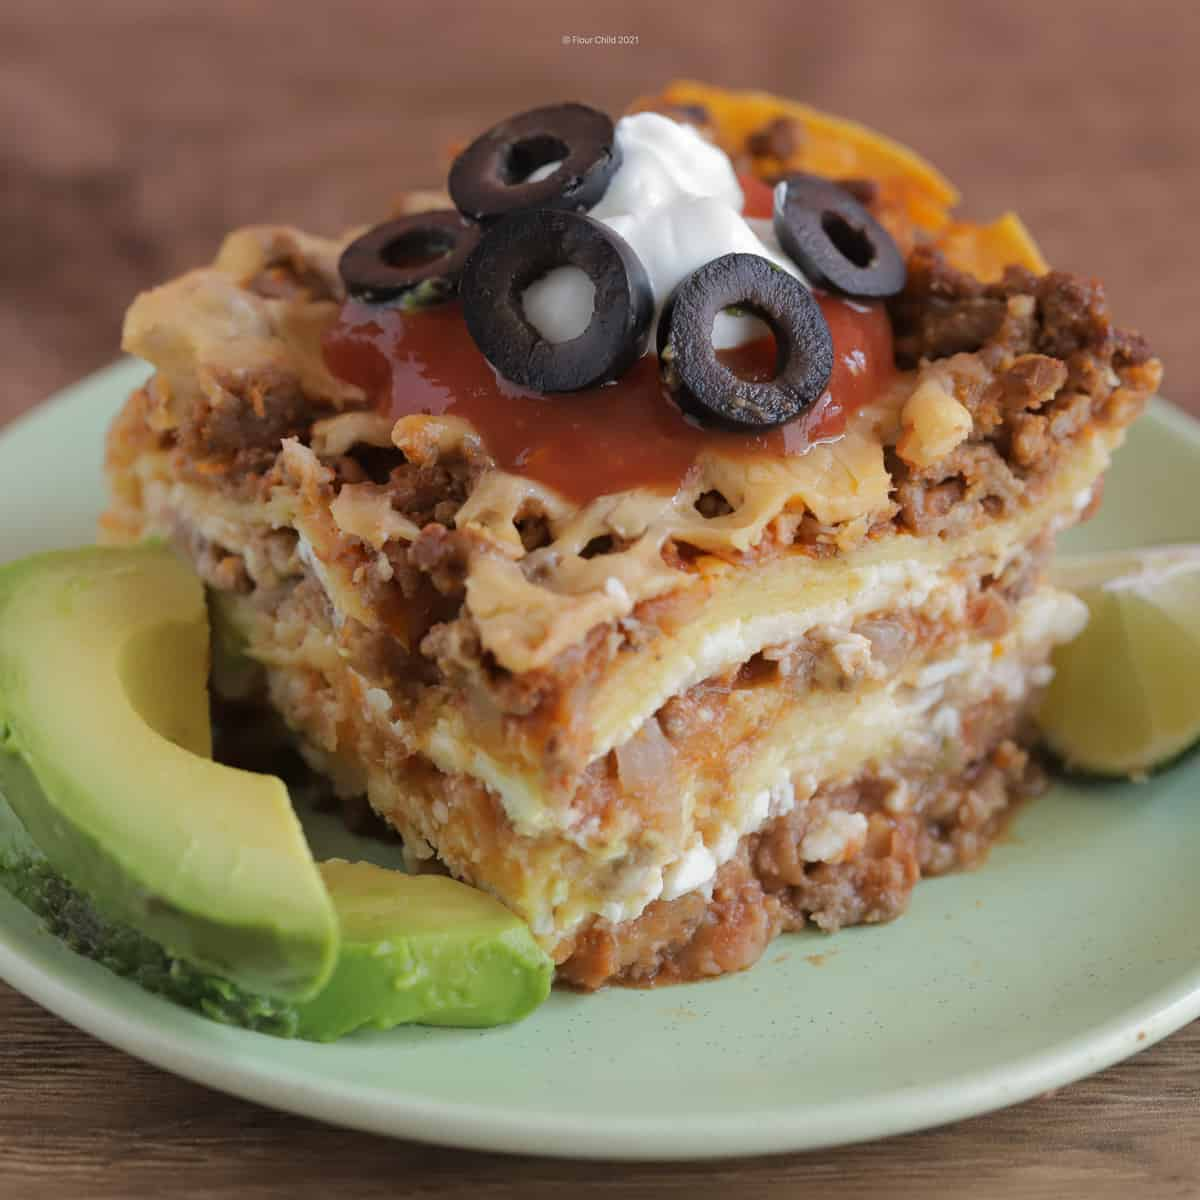 Slice of Mexican Lasagna on a green plate topped with sour cream and olives, with sliced avocados and lime on the side